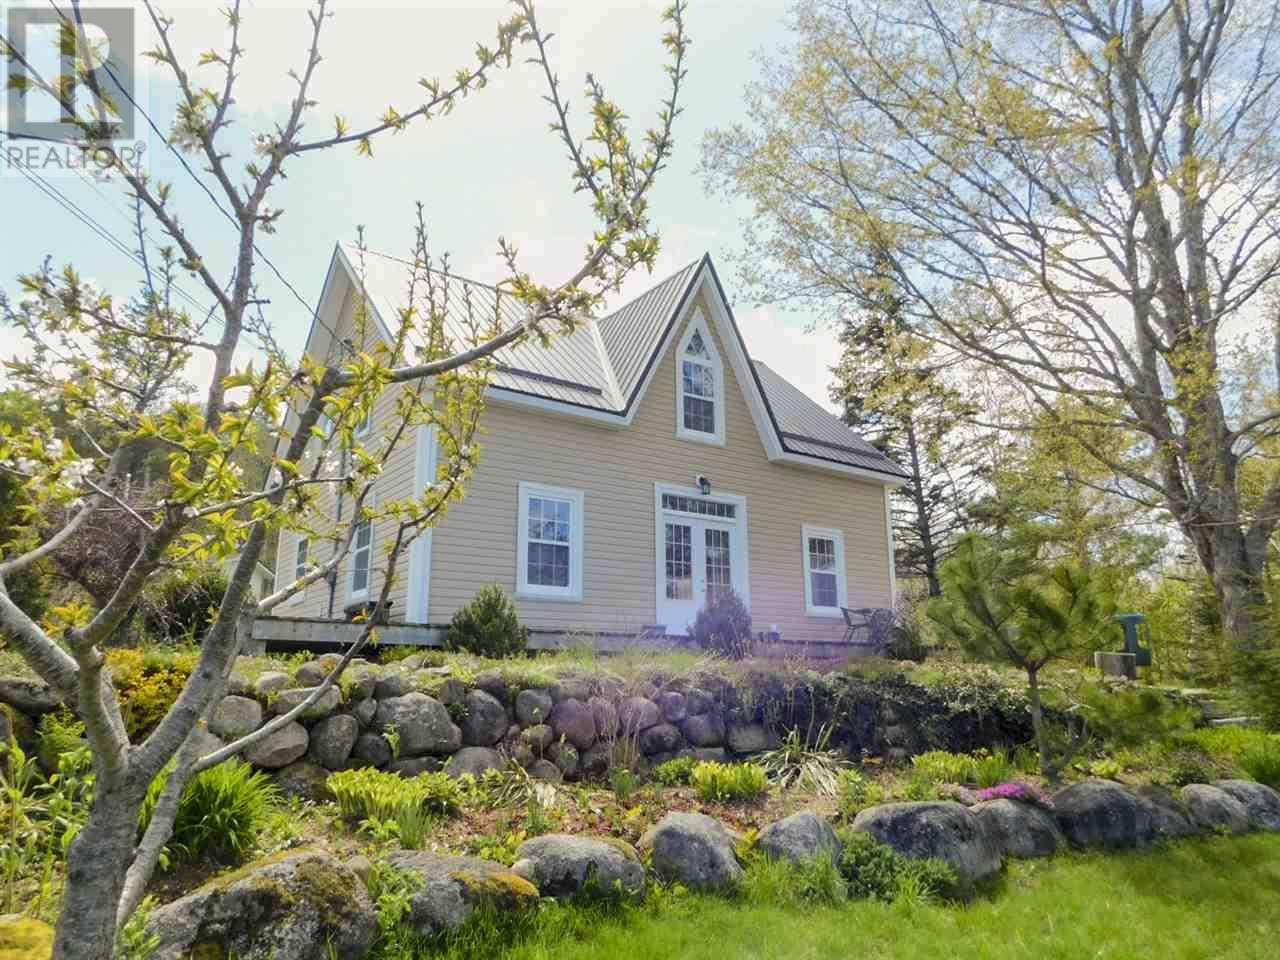 House for sale at 528 331 Hy Conquerall Bank Nova Scotia - MLS: 201924251